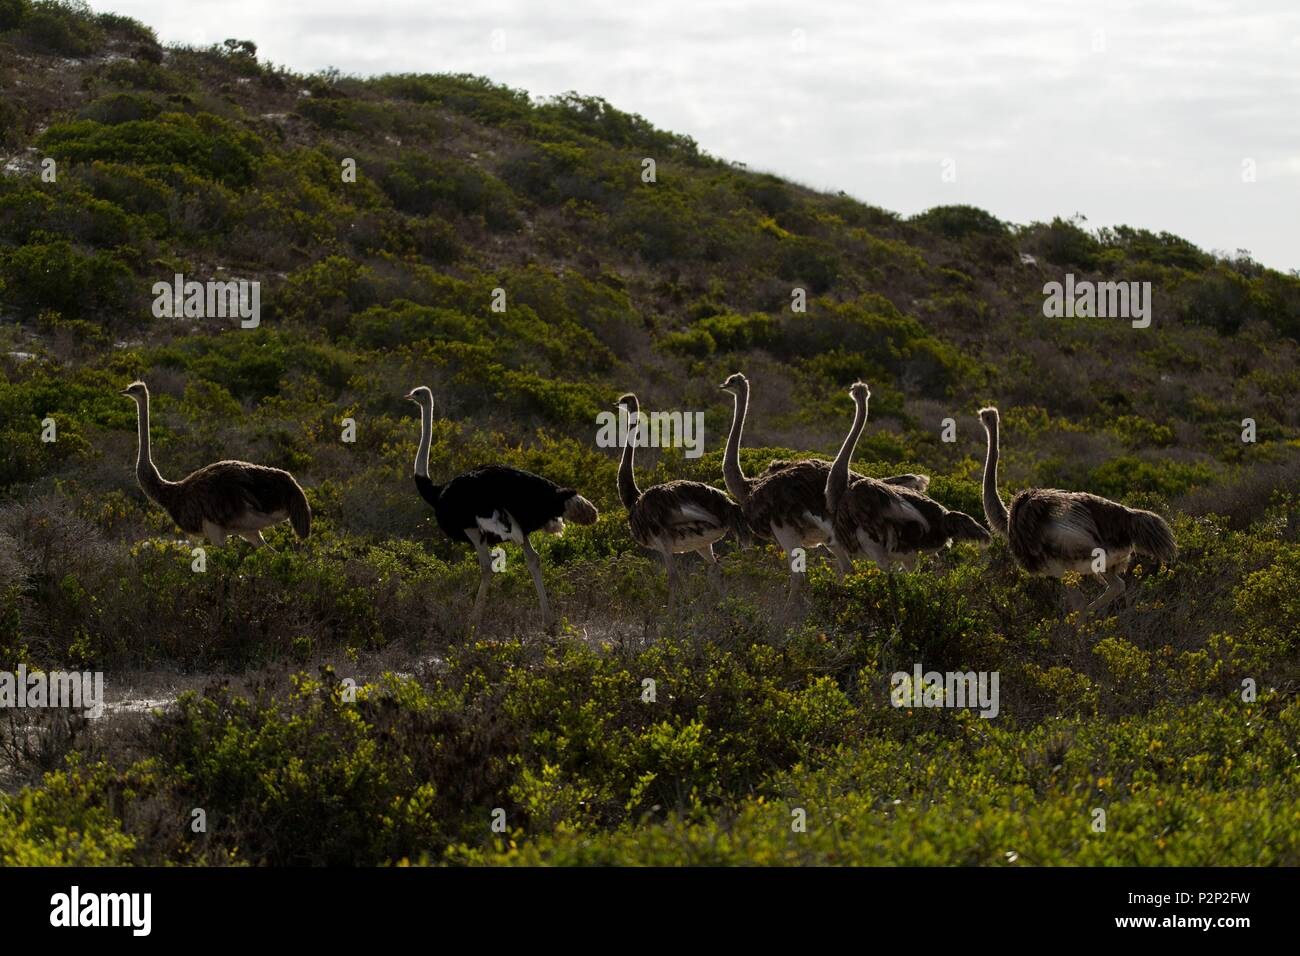 South Africa, Western Cape, Ostrich Group (Struthio camelus) in West Coast NP - Stock Image